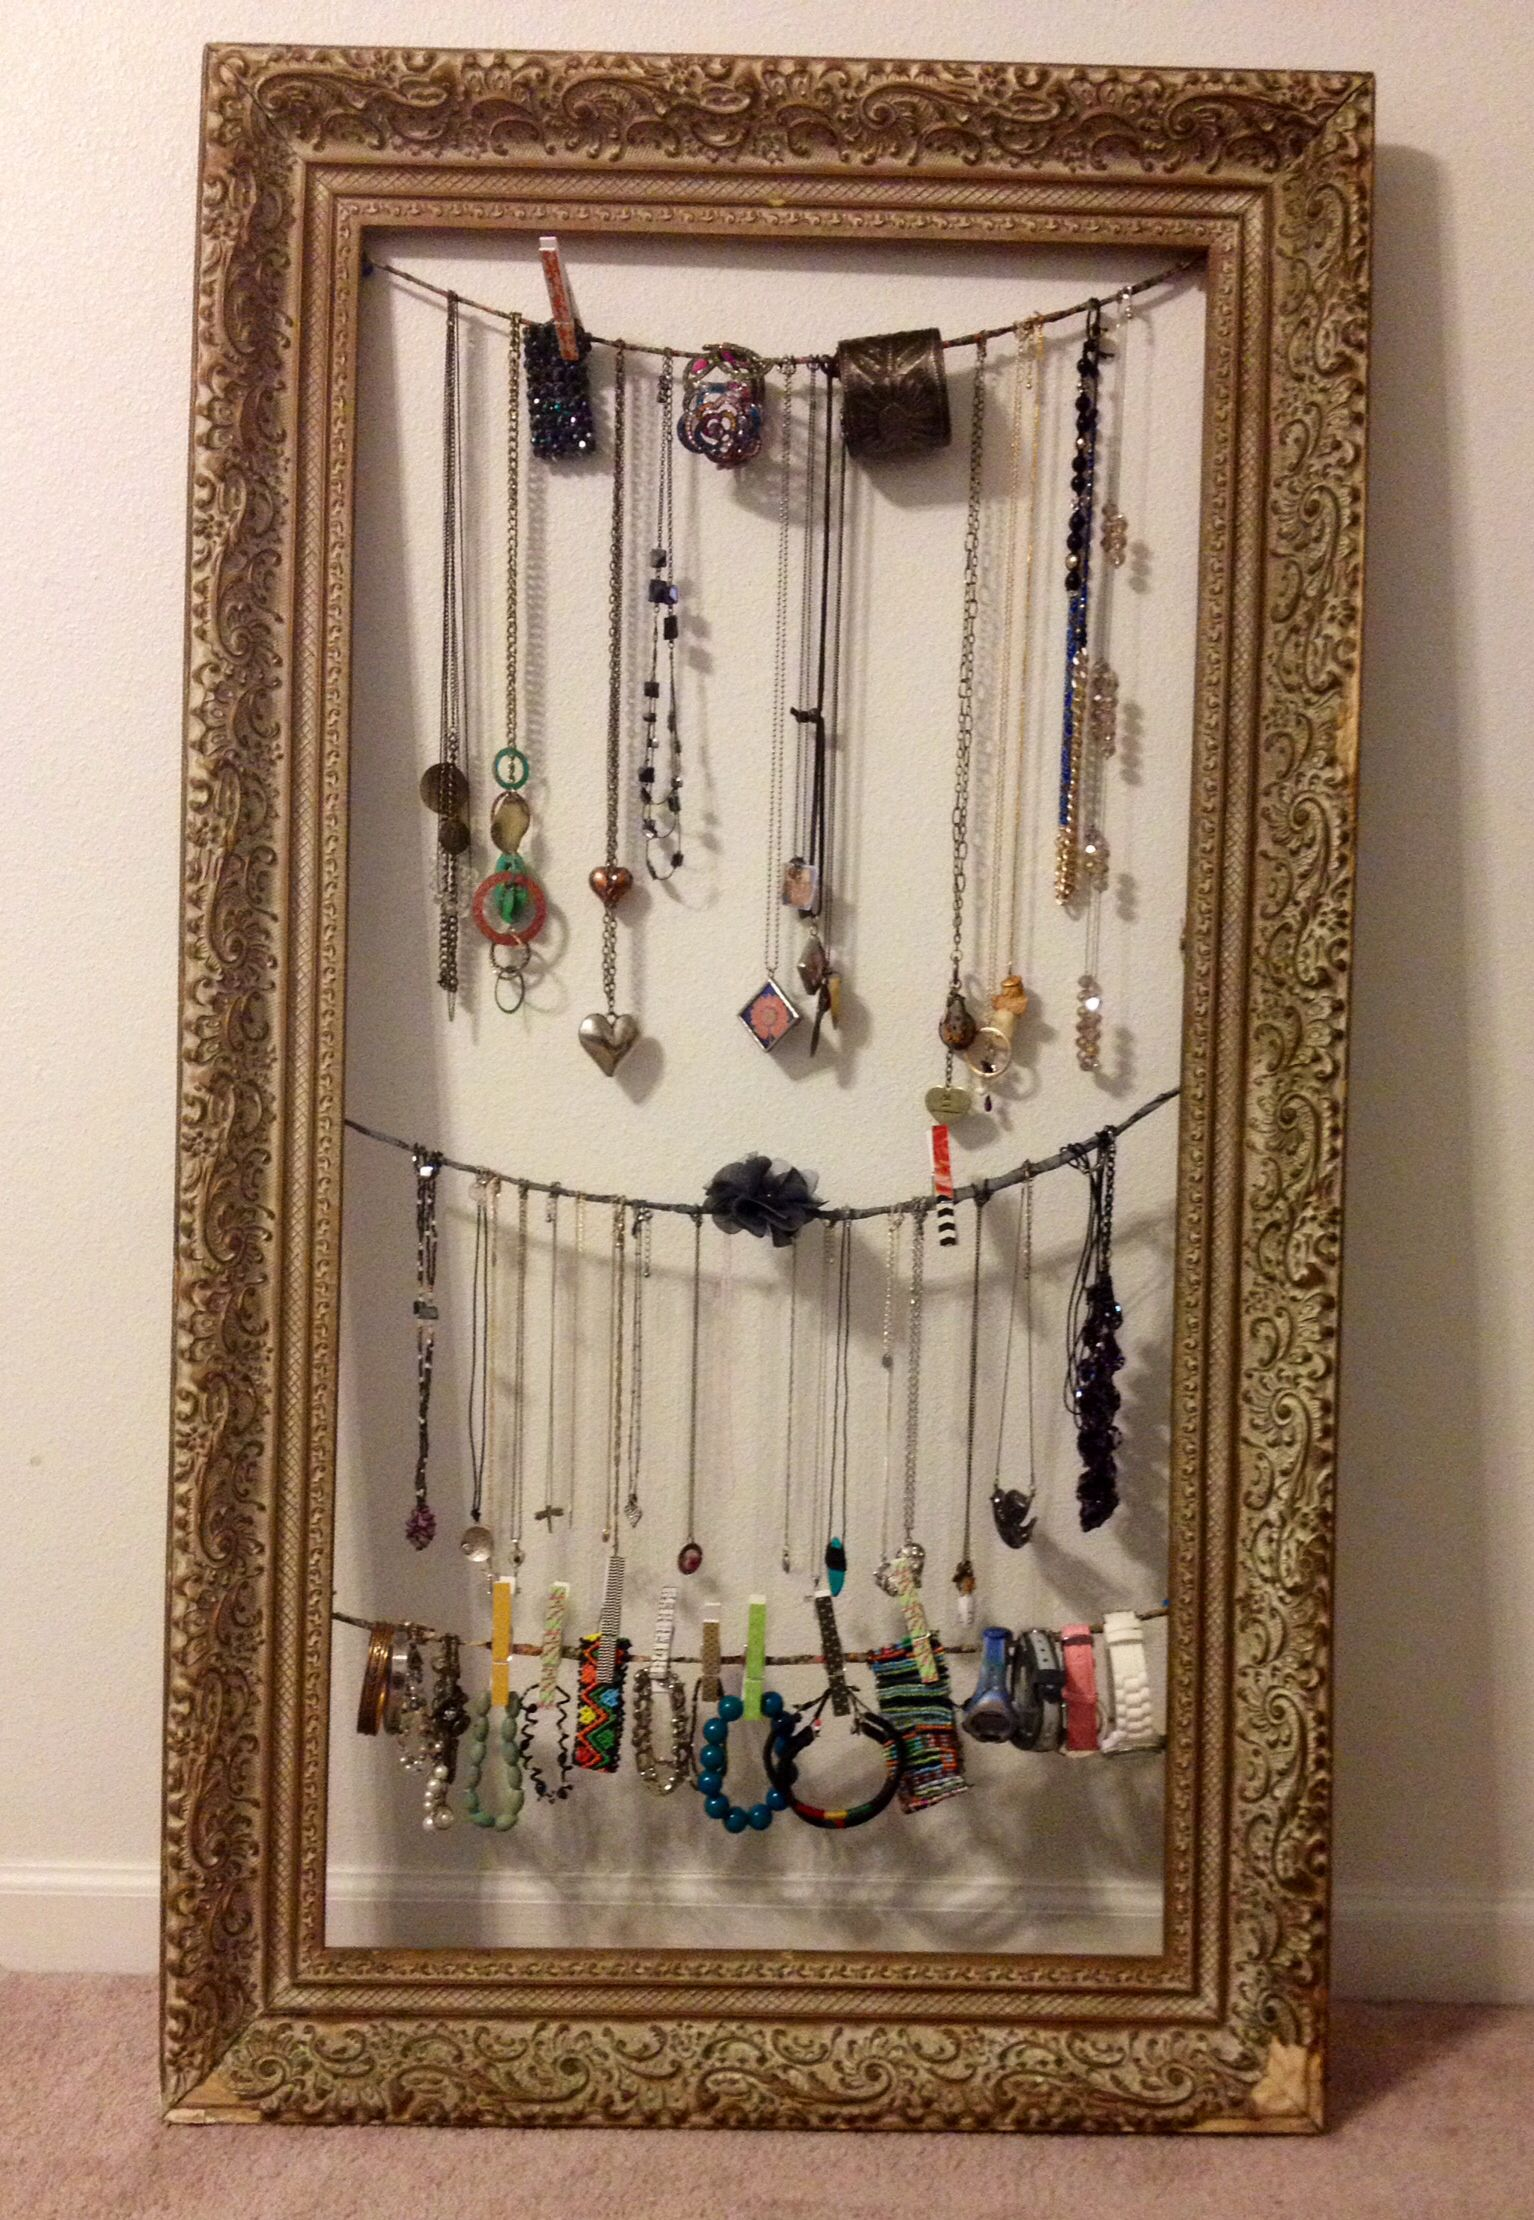 Unique Jewelry Display : unique, jewelry, display, After,, Unique, Jewelry, Display!, Jewellery, Display,, Extraordinary, Jewelry,, Booth